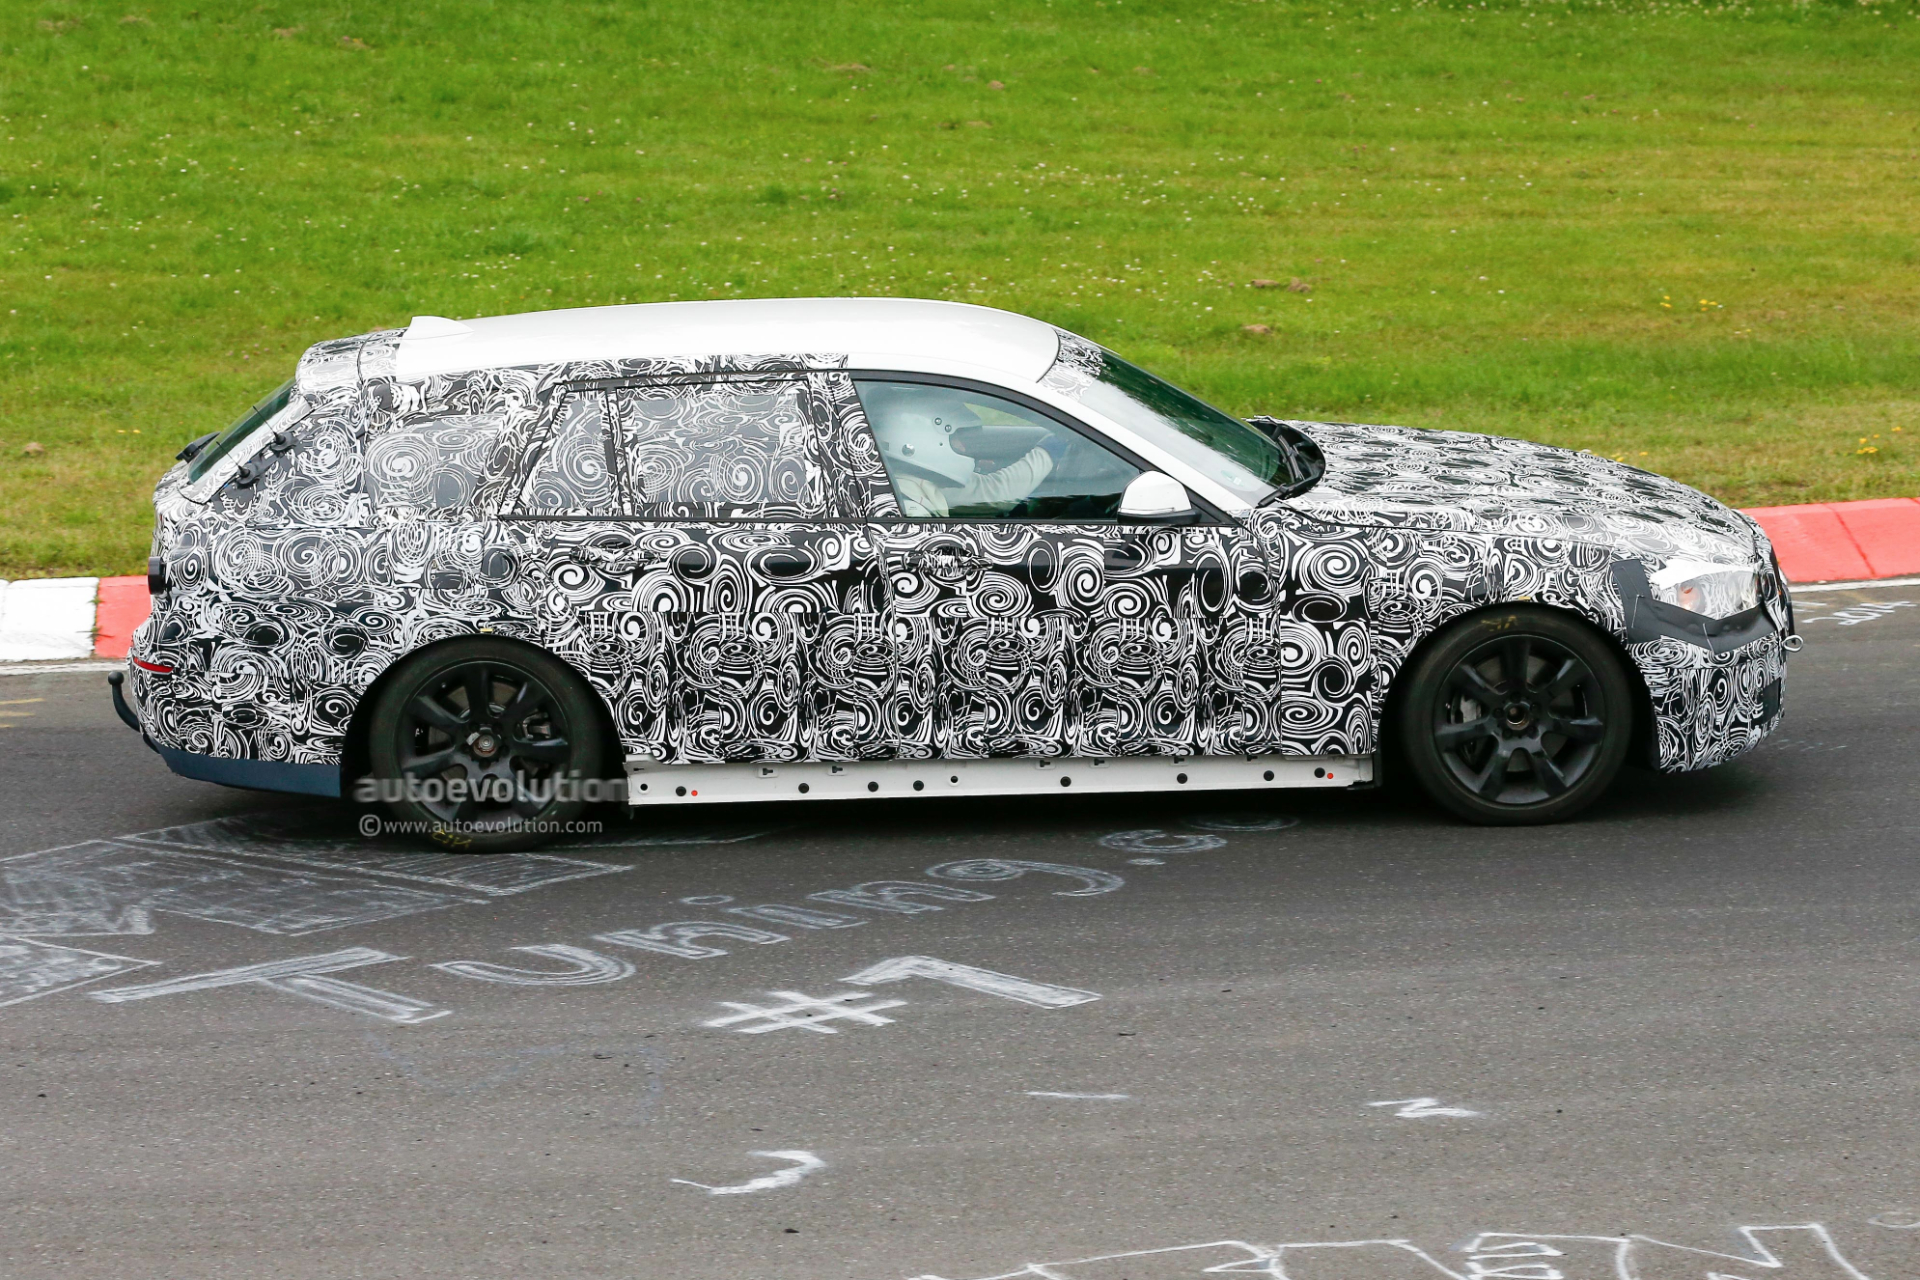 2016 - [BMW] Série 5 Berline & Touring [G30/G31] - Page 4 2016-bmw-5-series-touring-prototype-spied-inside-and-out-photo-gallery_6